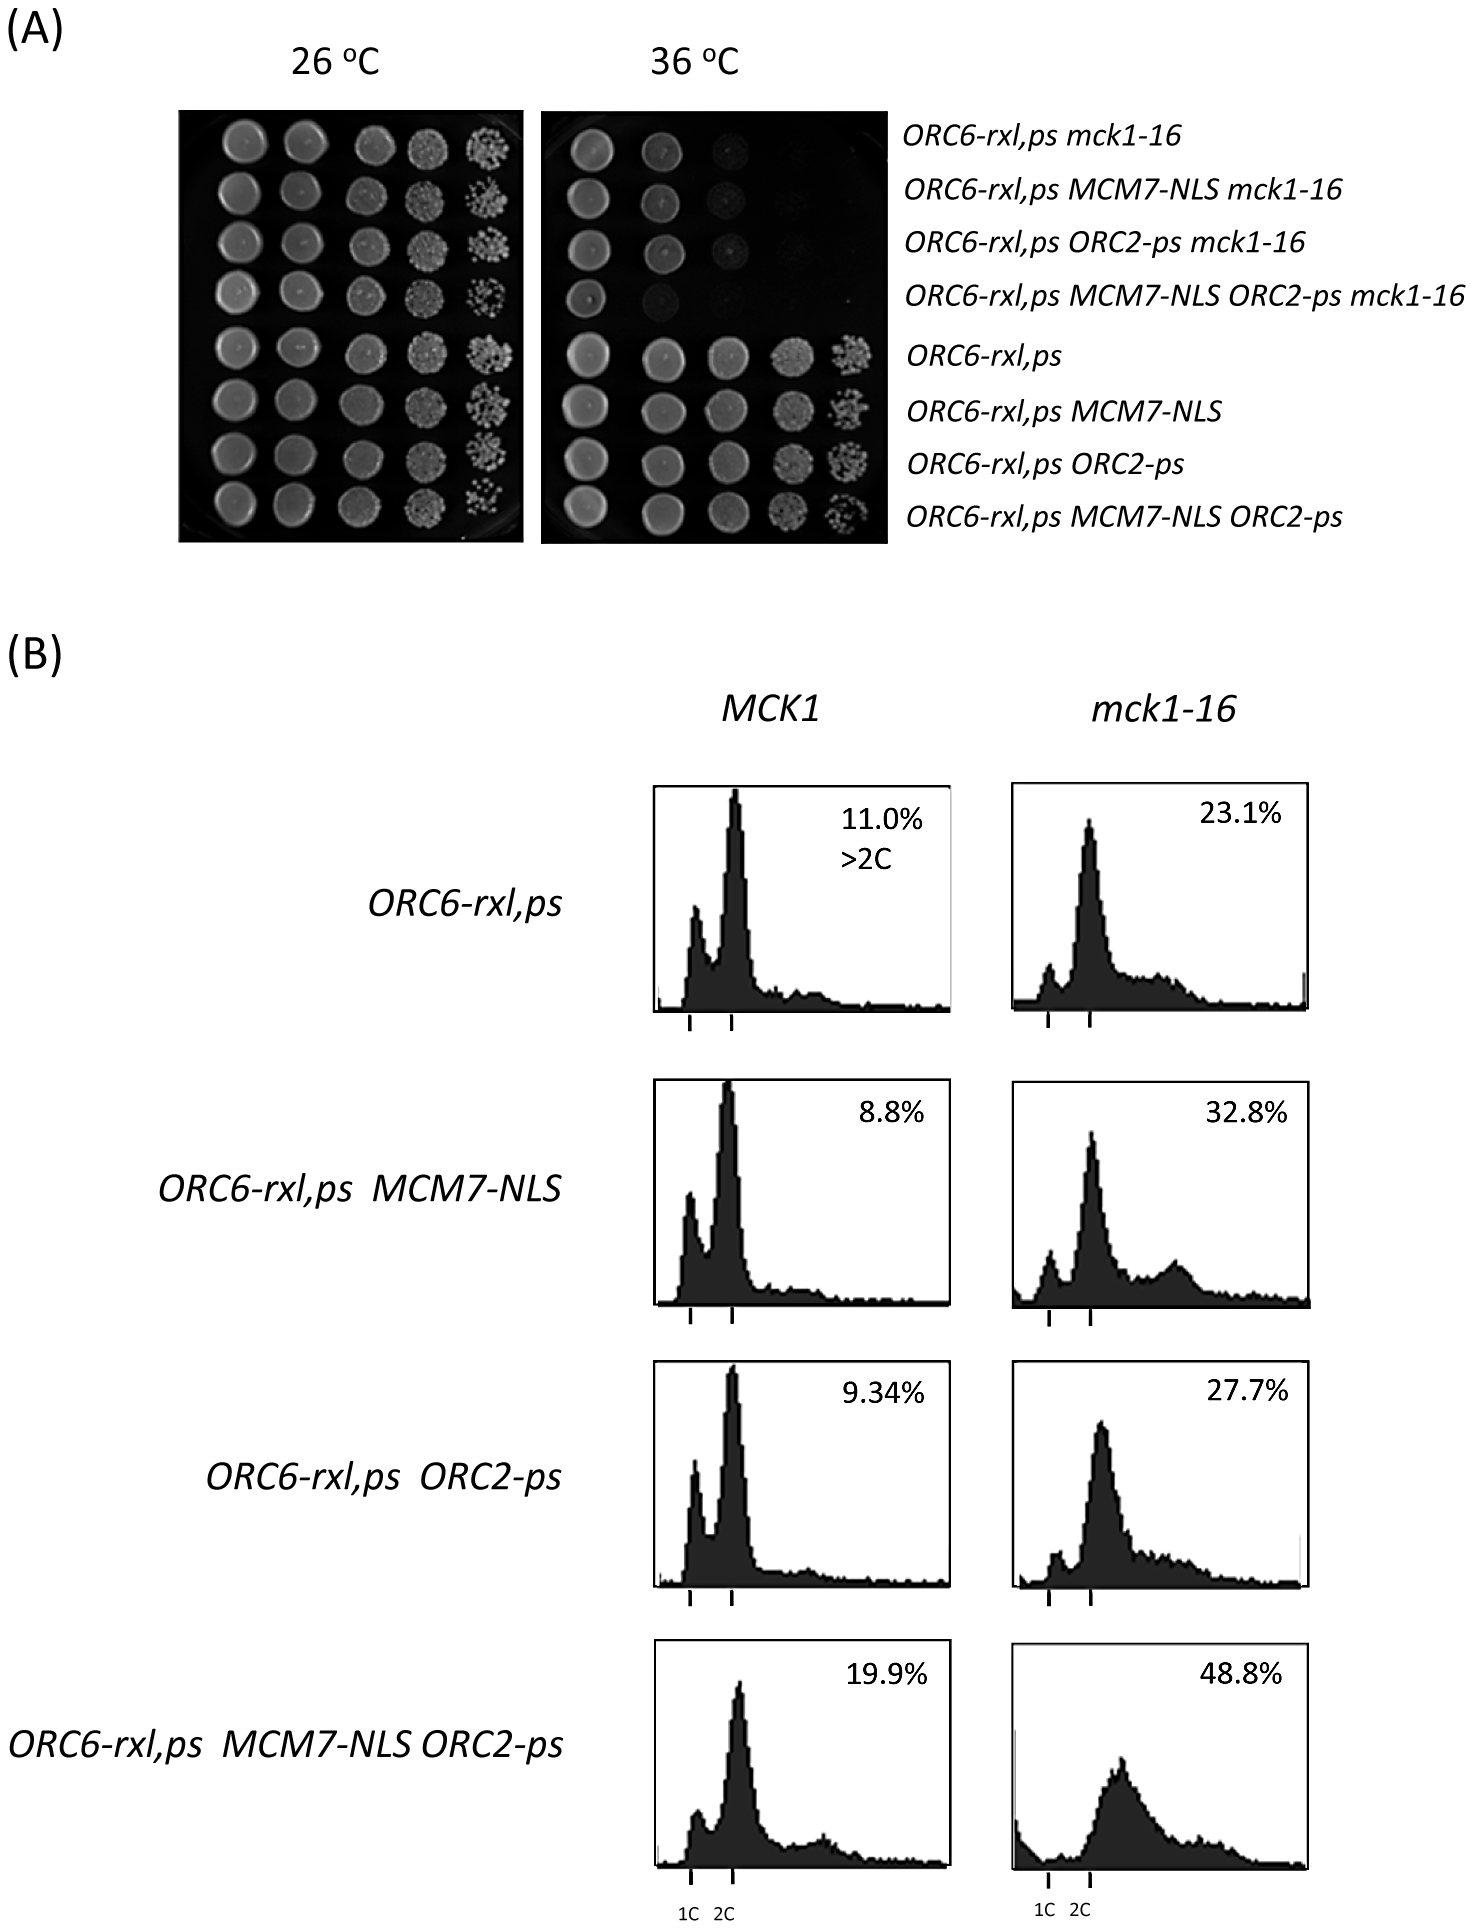 Mechanism of DNA re-replication control by Mck1 kinase is additive.